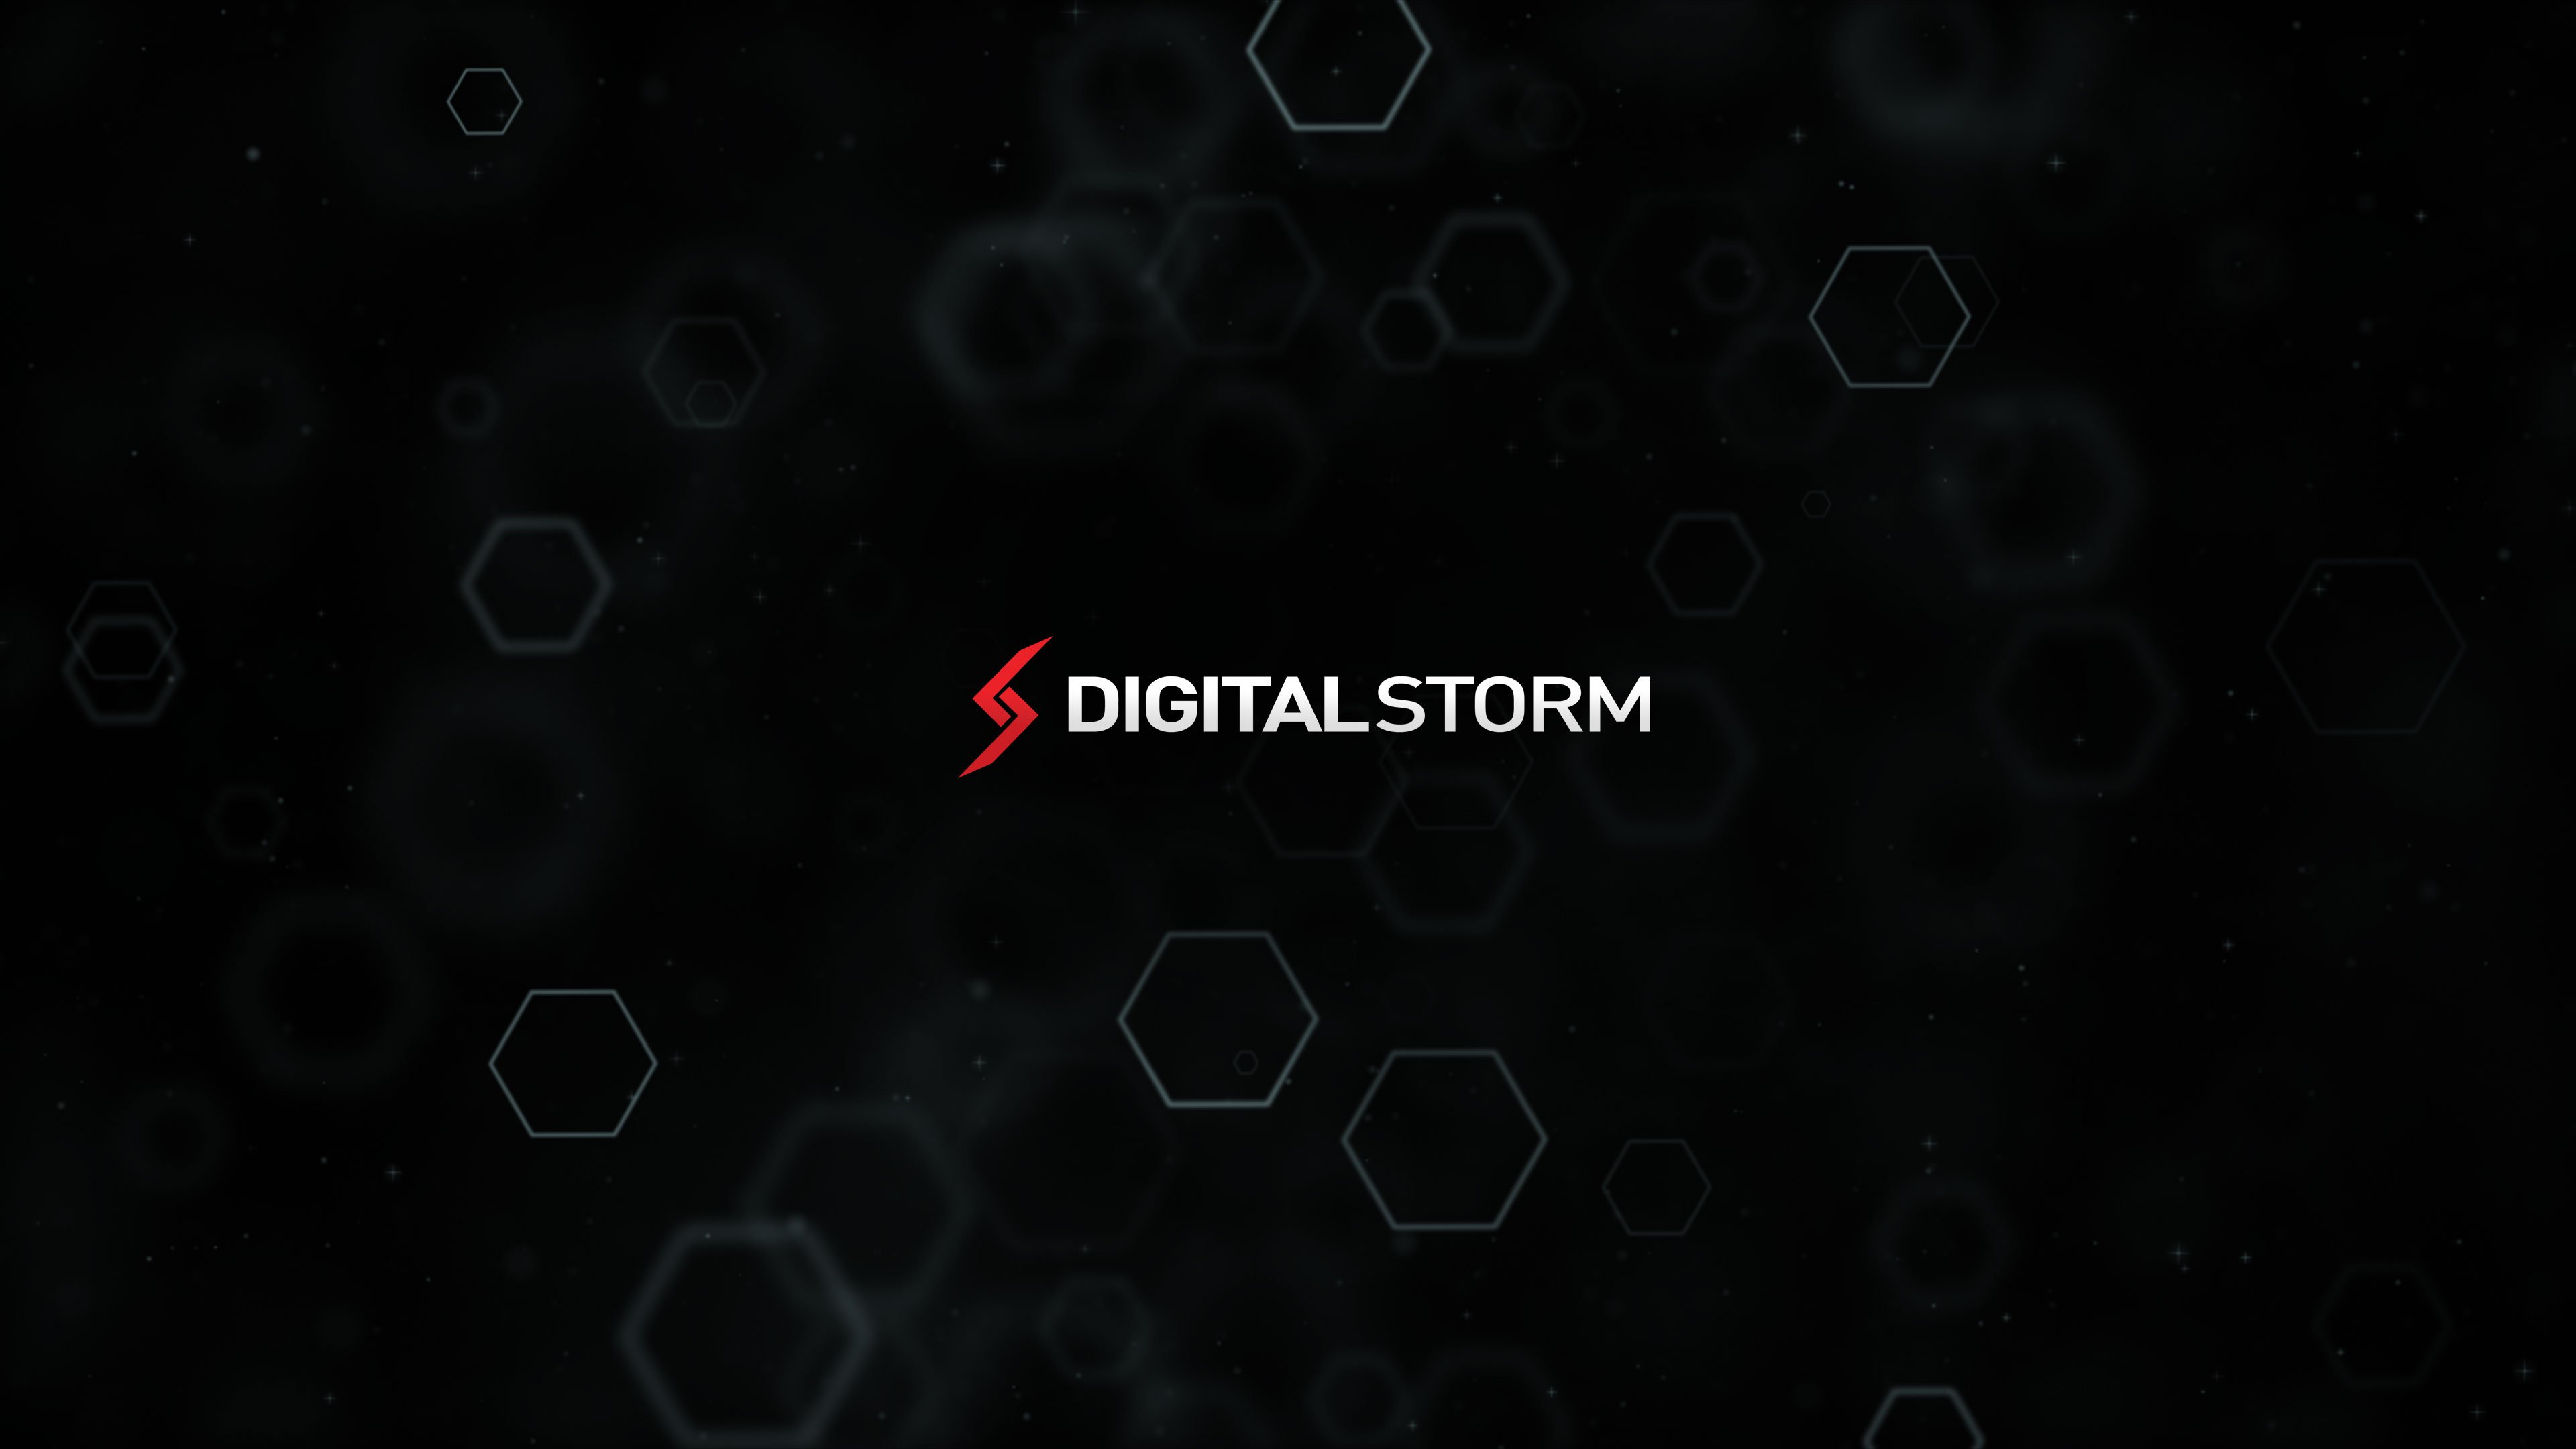 digital storm wallpapers 1920x1200 - photo #4